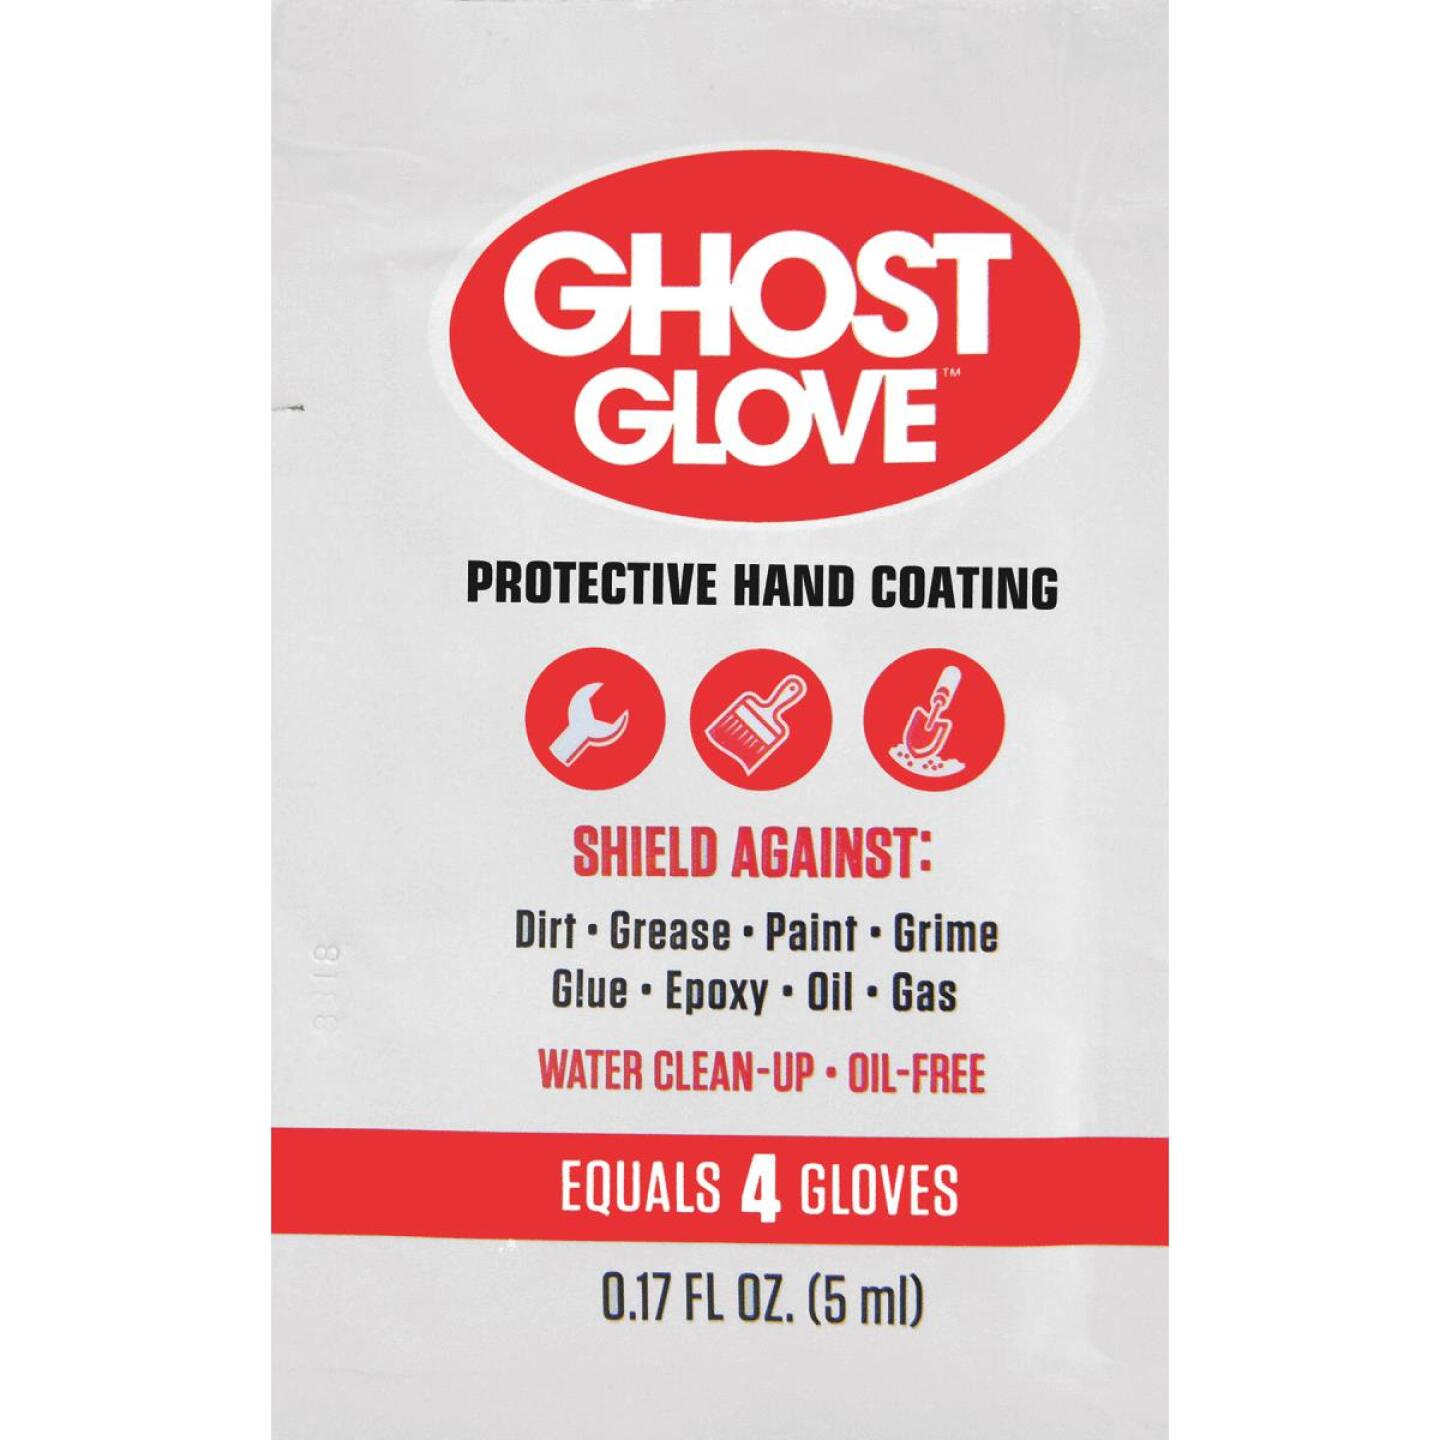 Ghost Glove 0.17 Oz. Protective Hand Coating Image 1